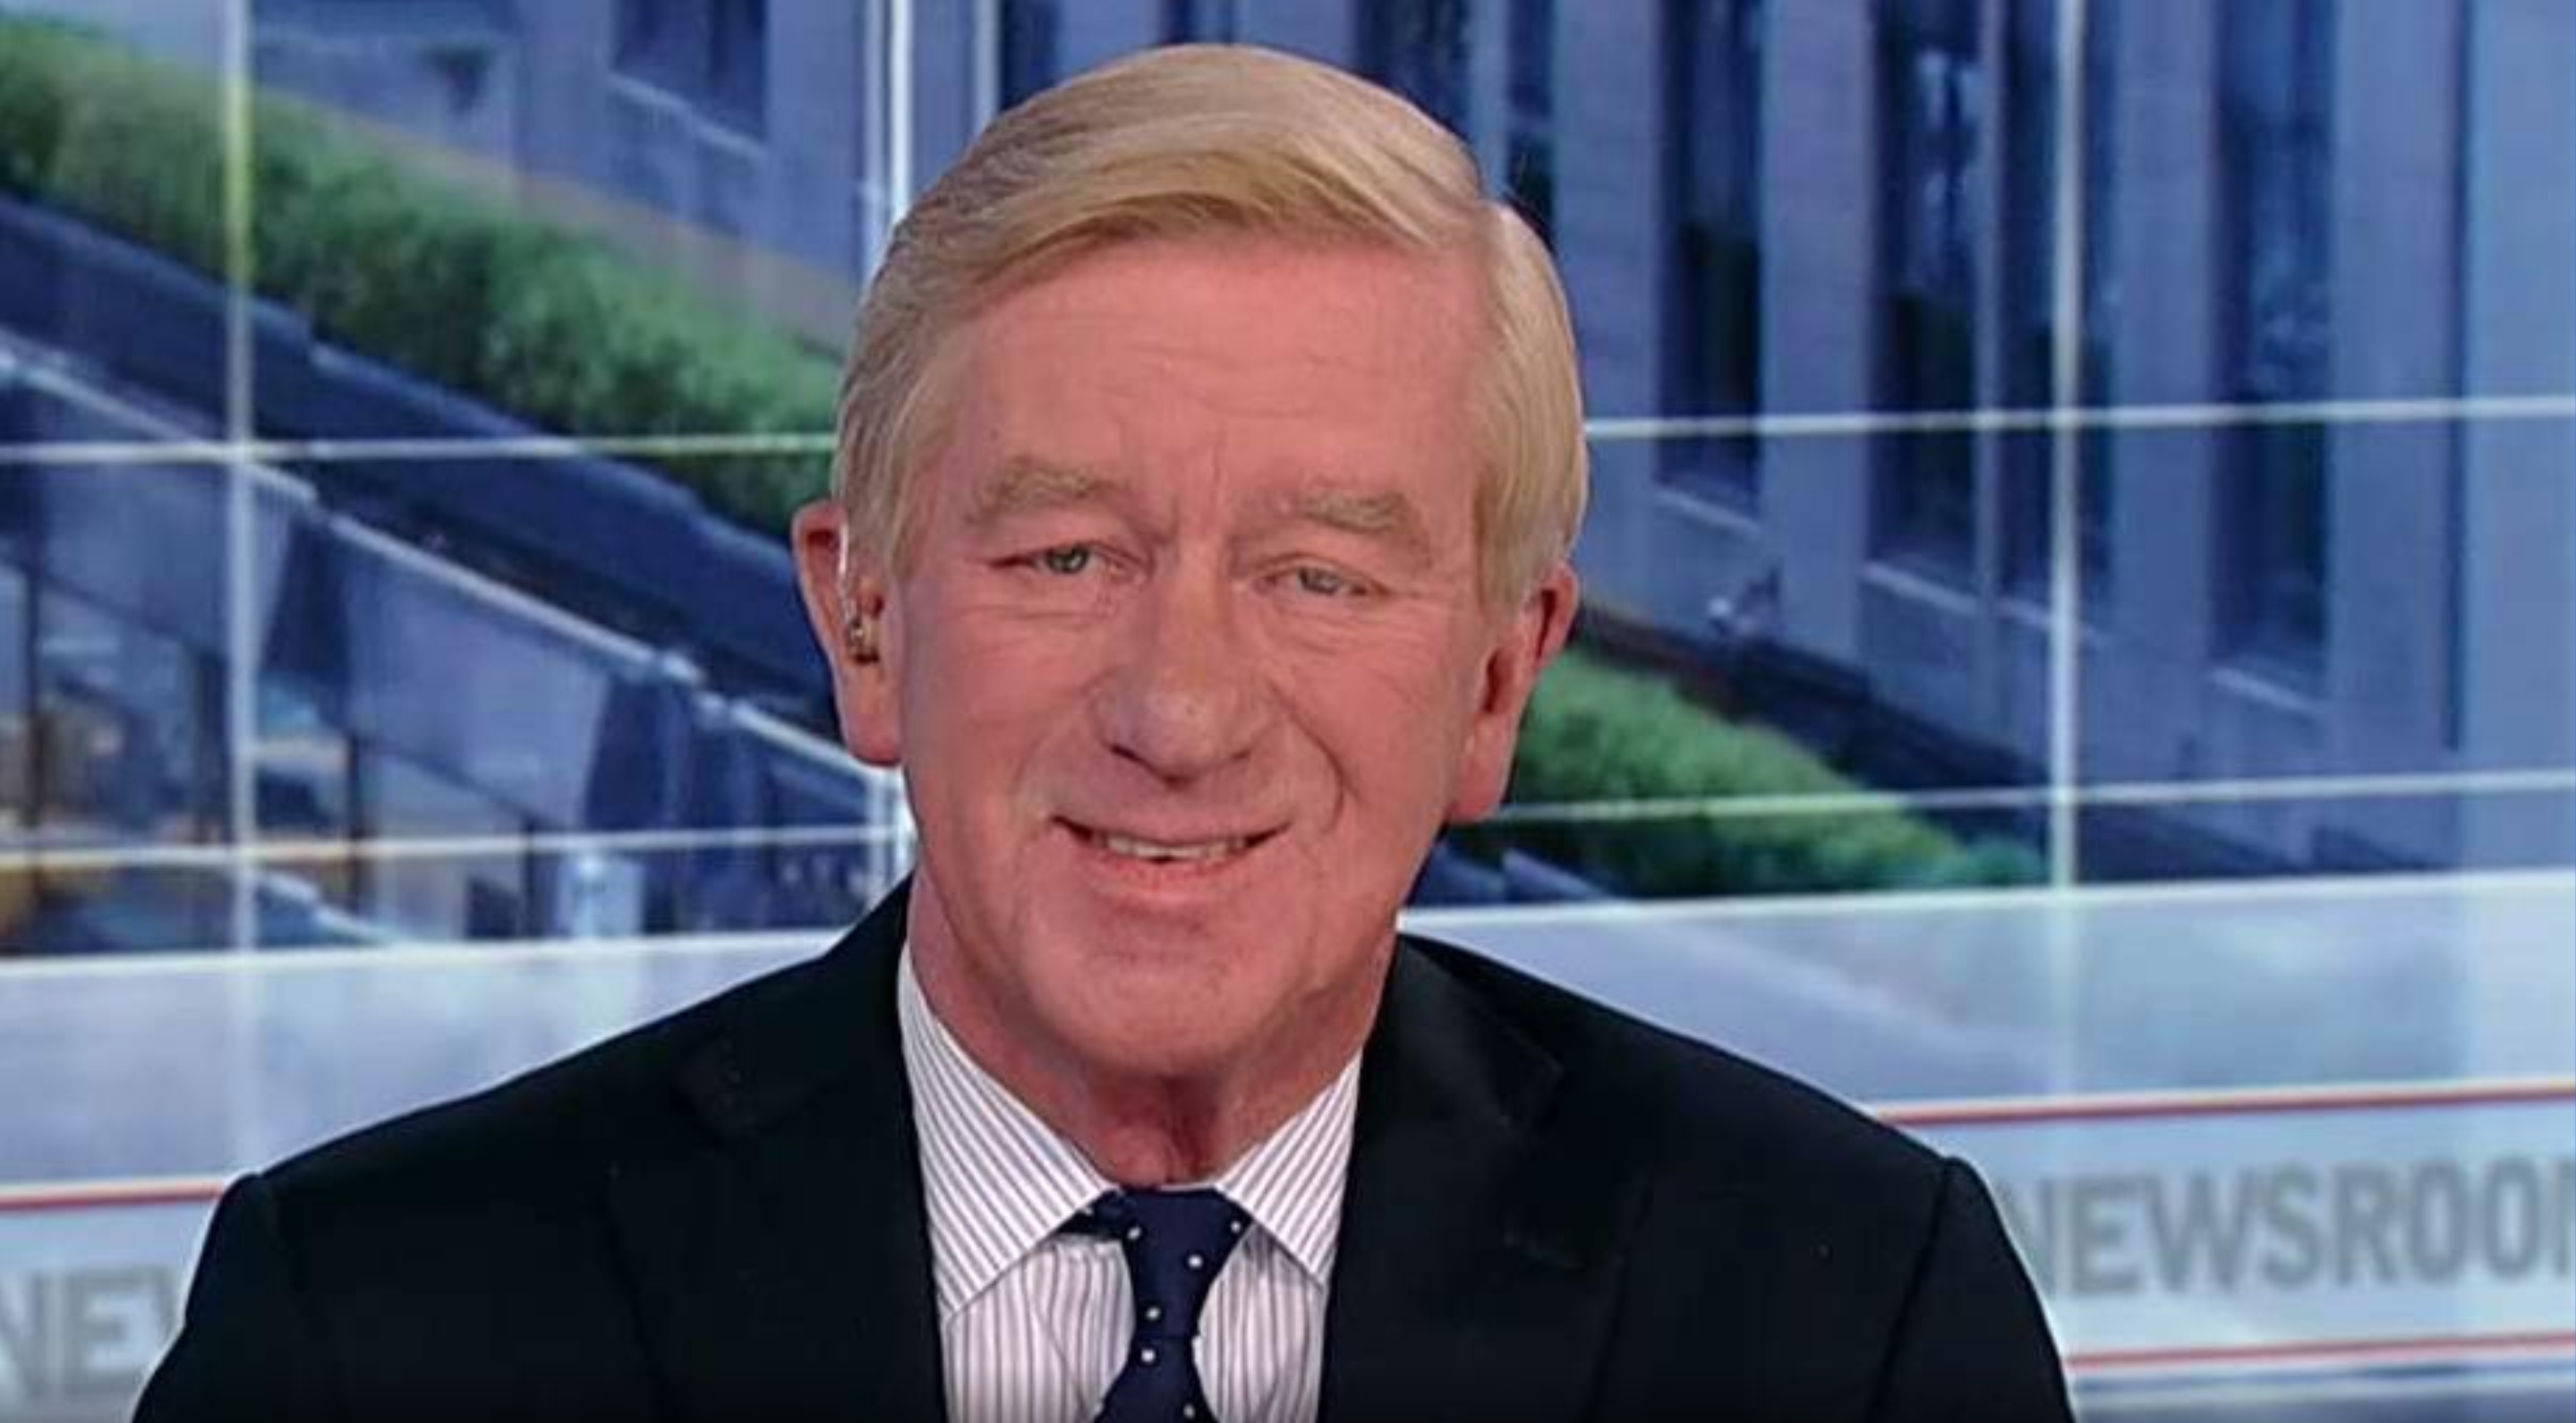 Westlake Legal Group Screen-Shot-2019-10-15-at-12.52.49-PM GOP Trump challenger Bill Weld on Dems' impeachment push: 'I think it's time' to go ahead with inquiry Joshua Nelson fox-news/shows/americas-newsroom fox-news/politics/trump-impeachment-inquiry fox-news/politics/2020-presidential-election fox-news/media/fox-news-flash fox news fnc/media fnc article 42e3e52f-0516-53e2-8c6d-e994124cc52b